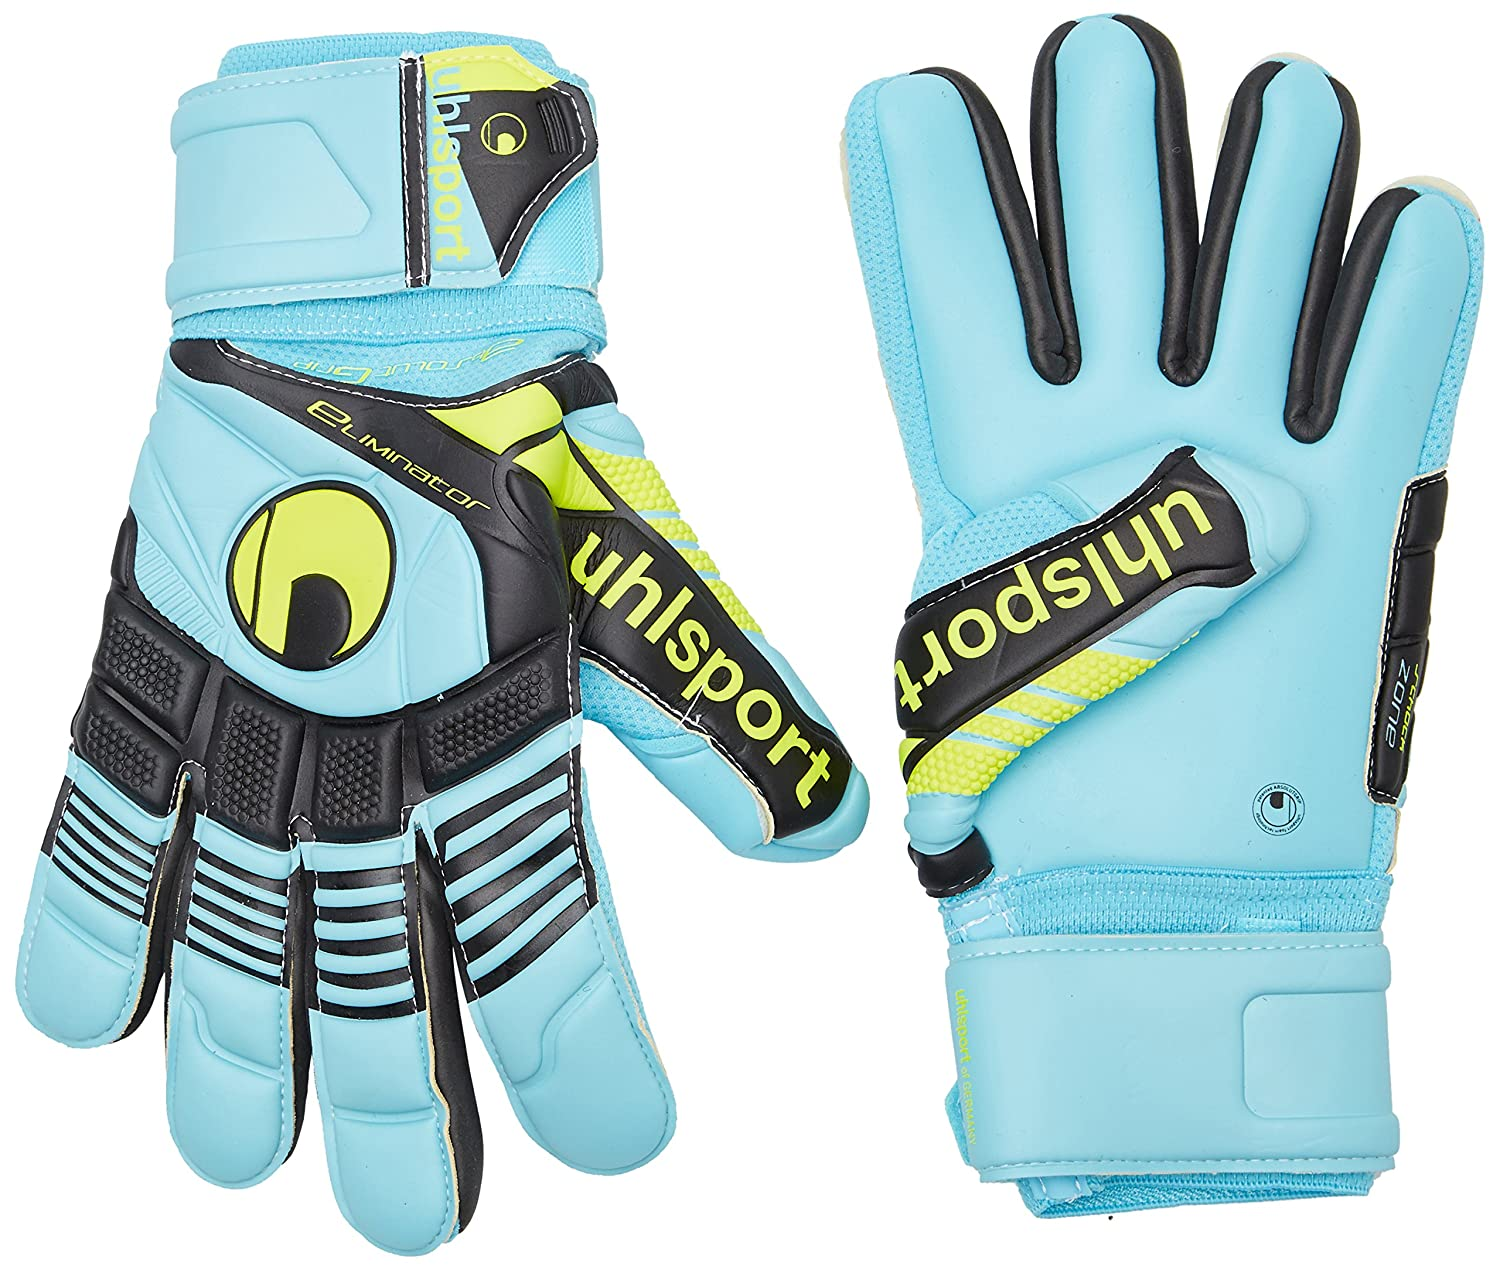 Uhlsport Torwarthandschuhe Eliminator Absolutgrip HN